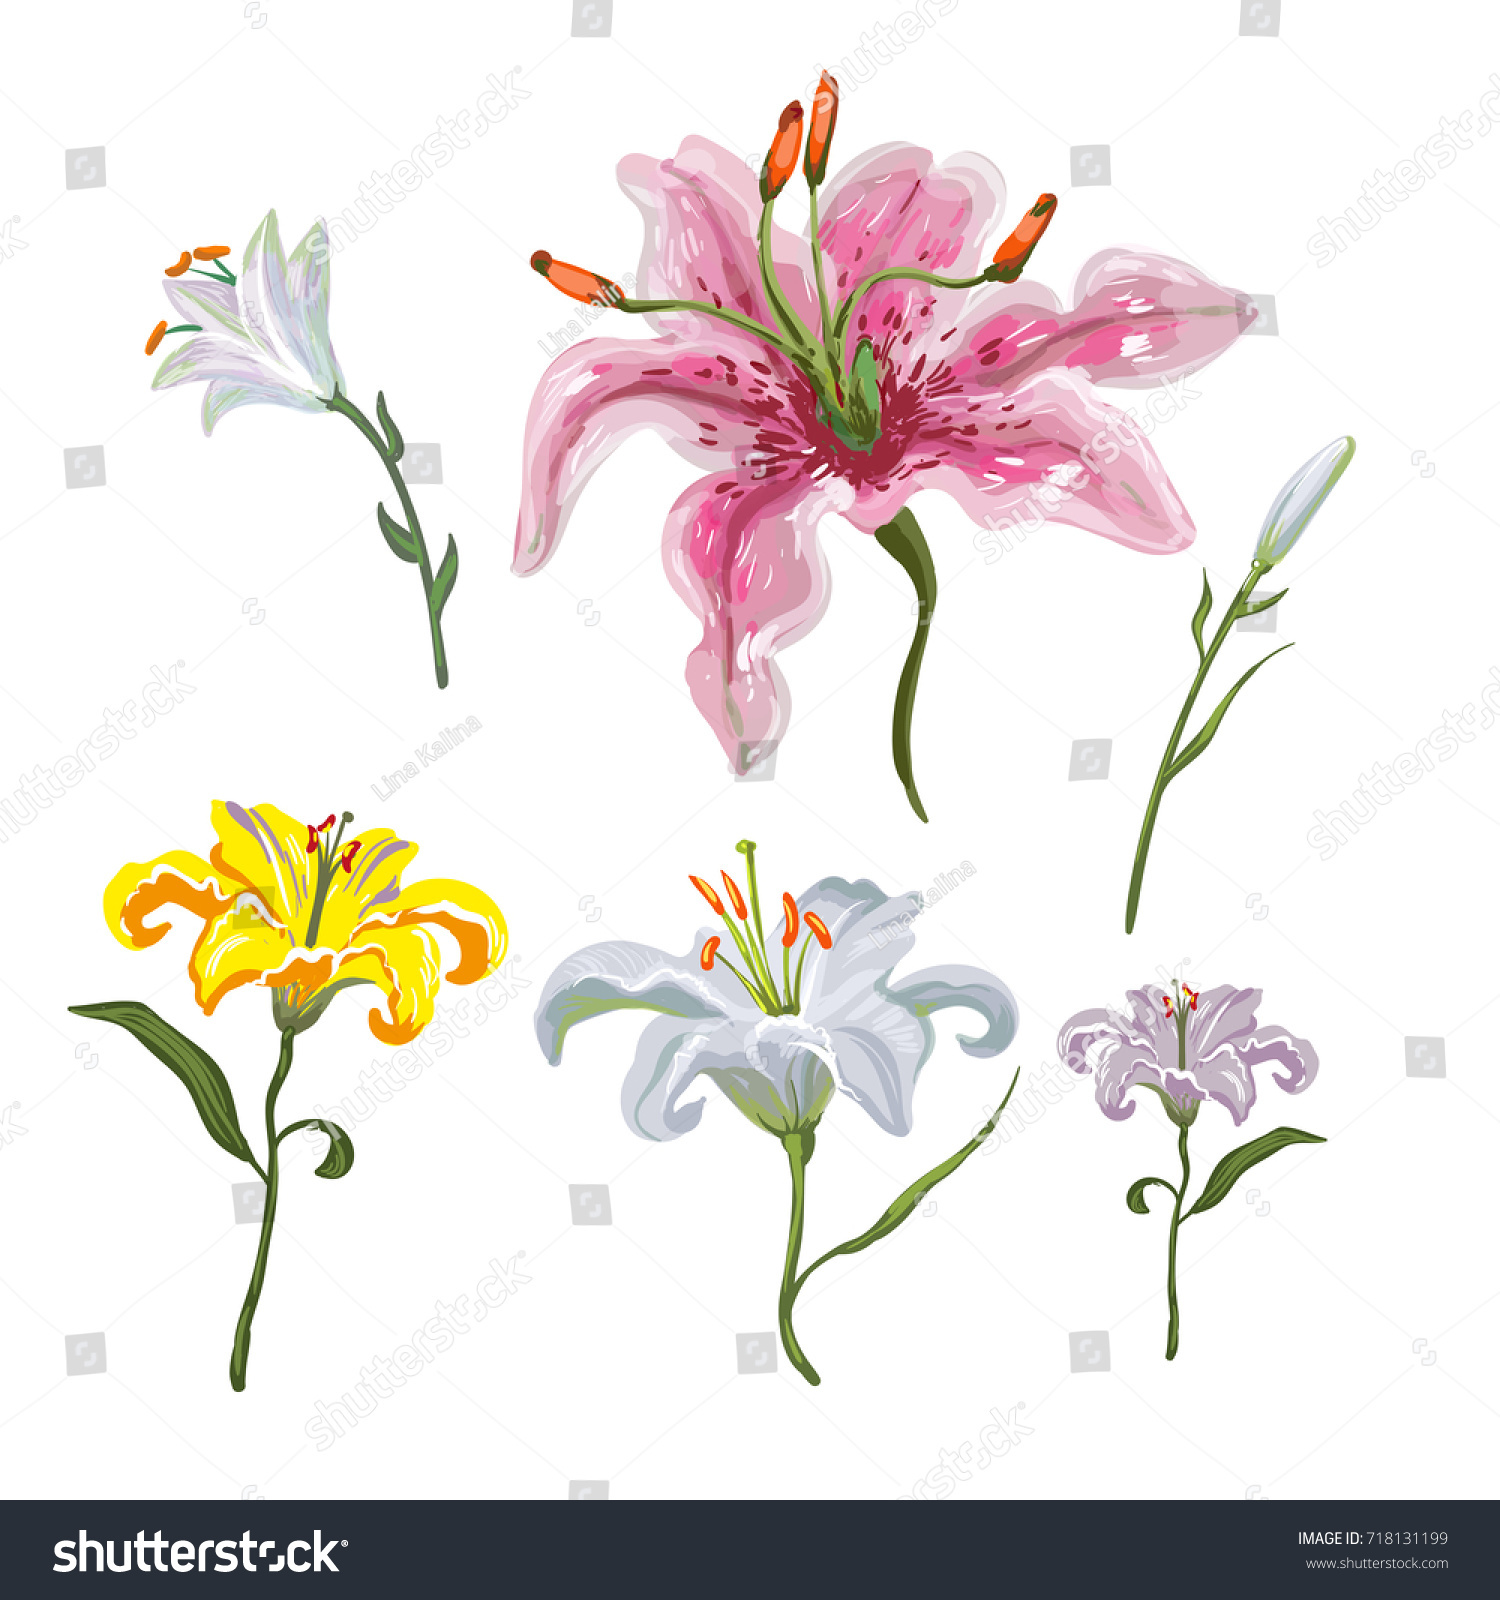 Colorful Of Lilies Flower On White Background Adornment For Wedding